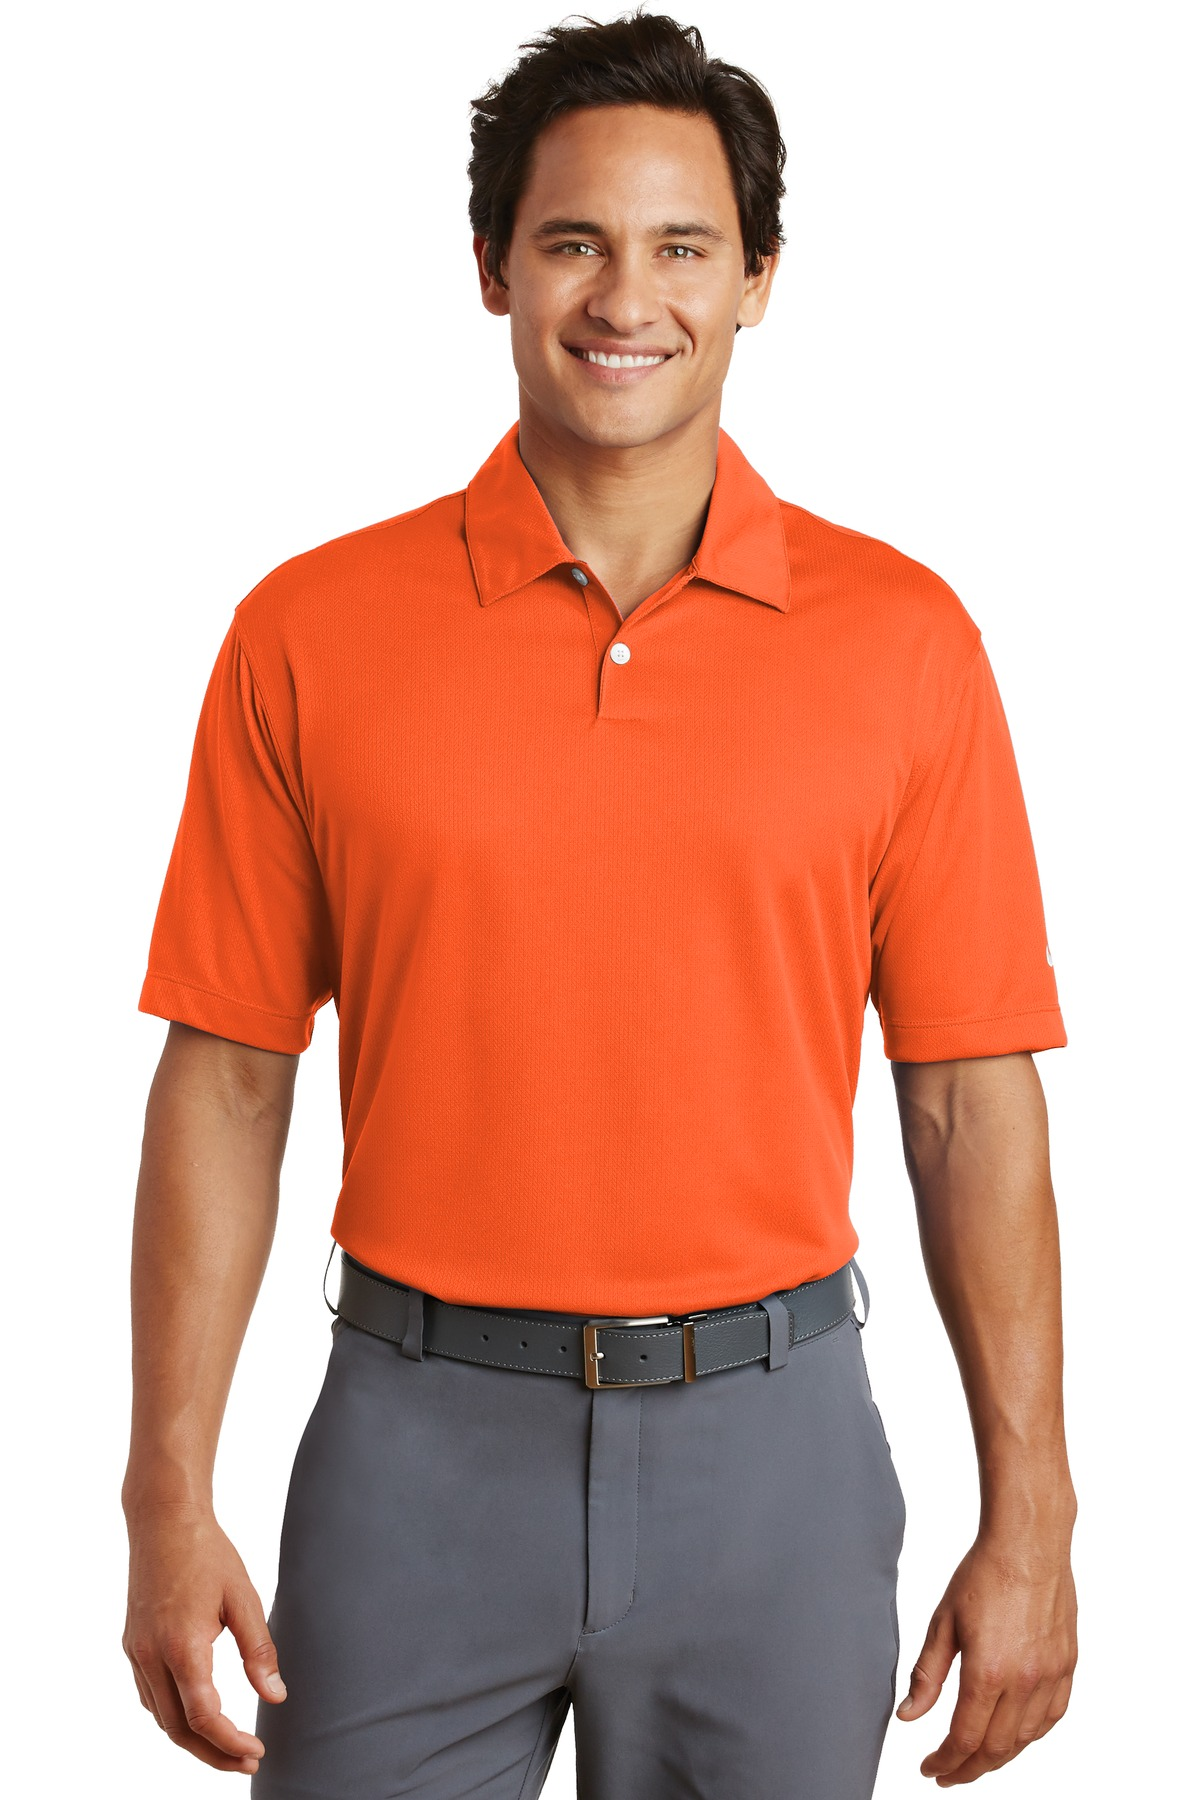 Nike Dri-FIT Pebble Texture Polo. 373749 - Brilliant Orange